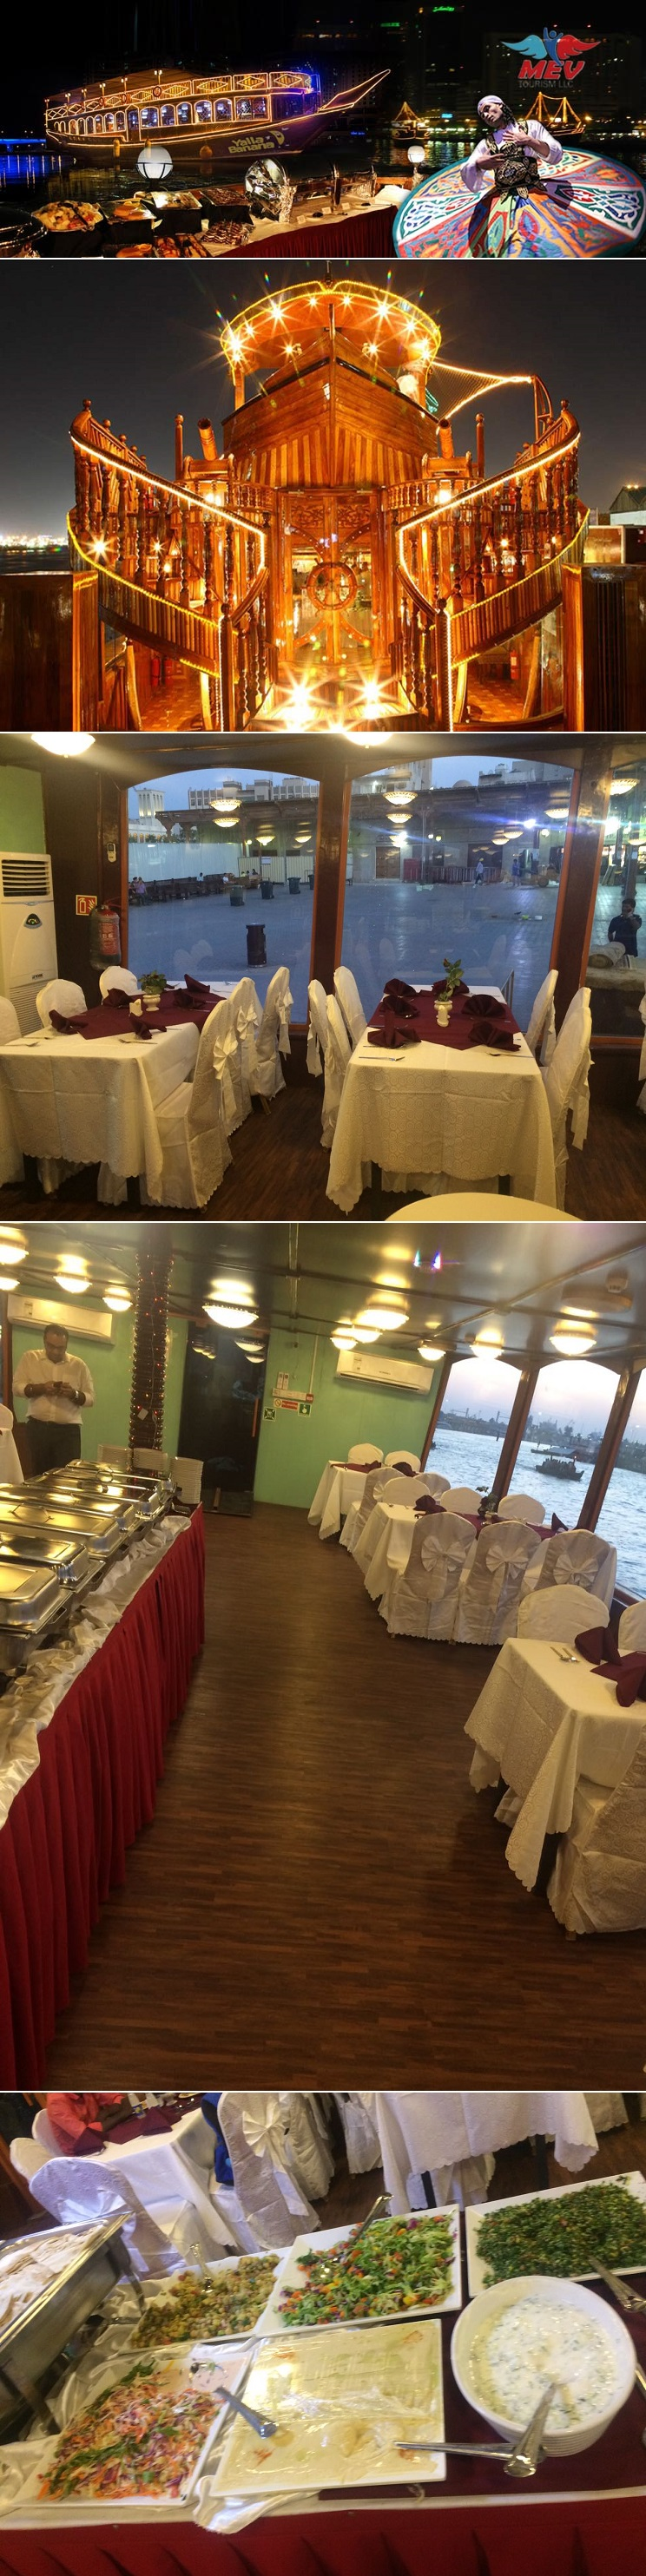 Dhow cruise dinner at creek AED 59 @Yallbanana